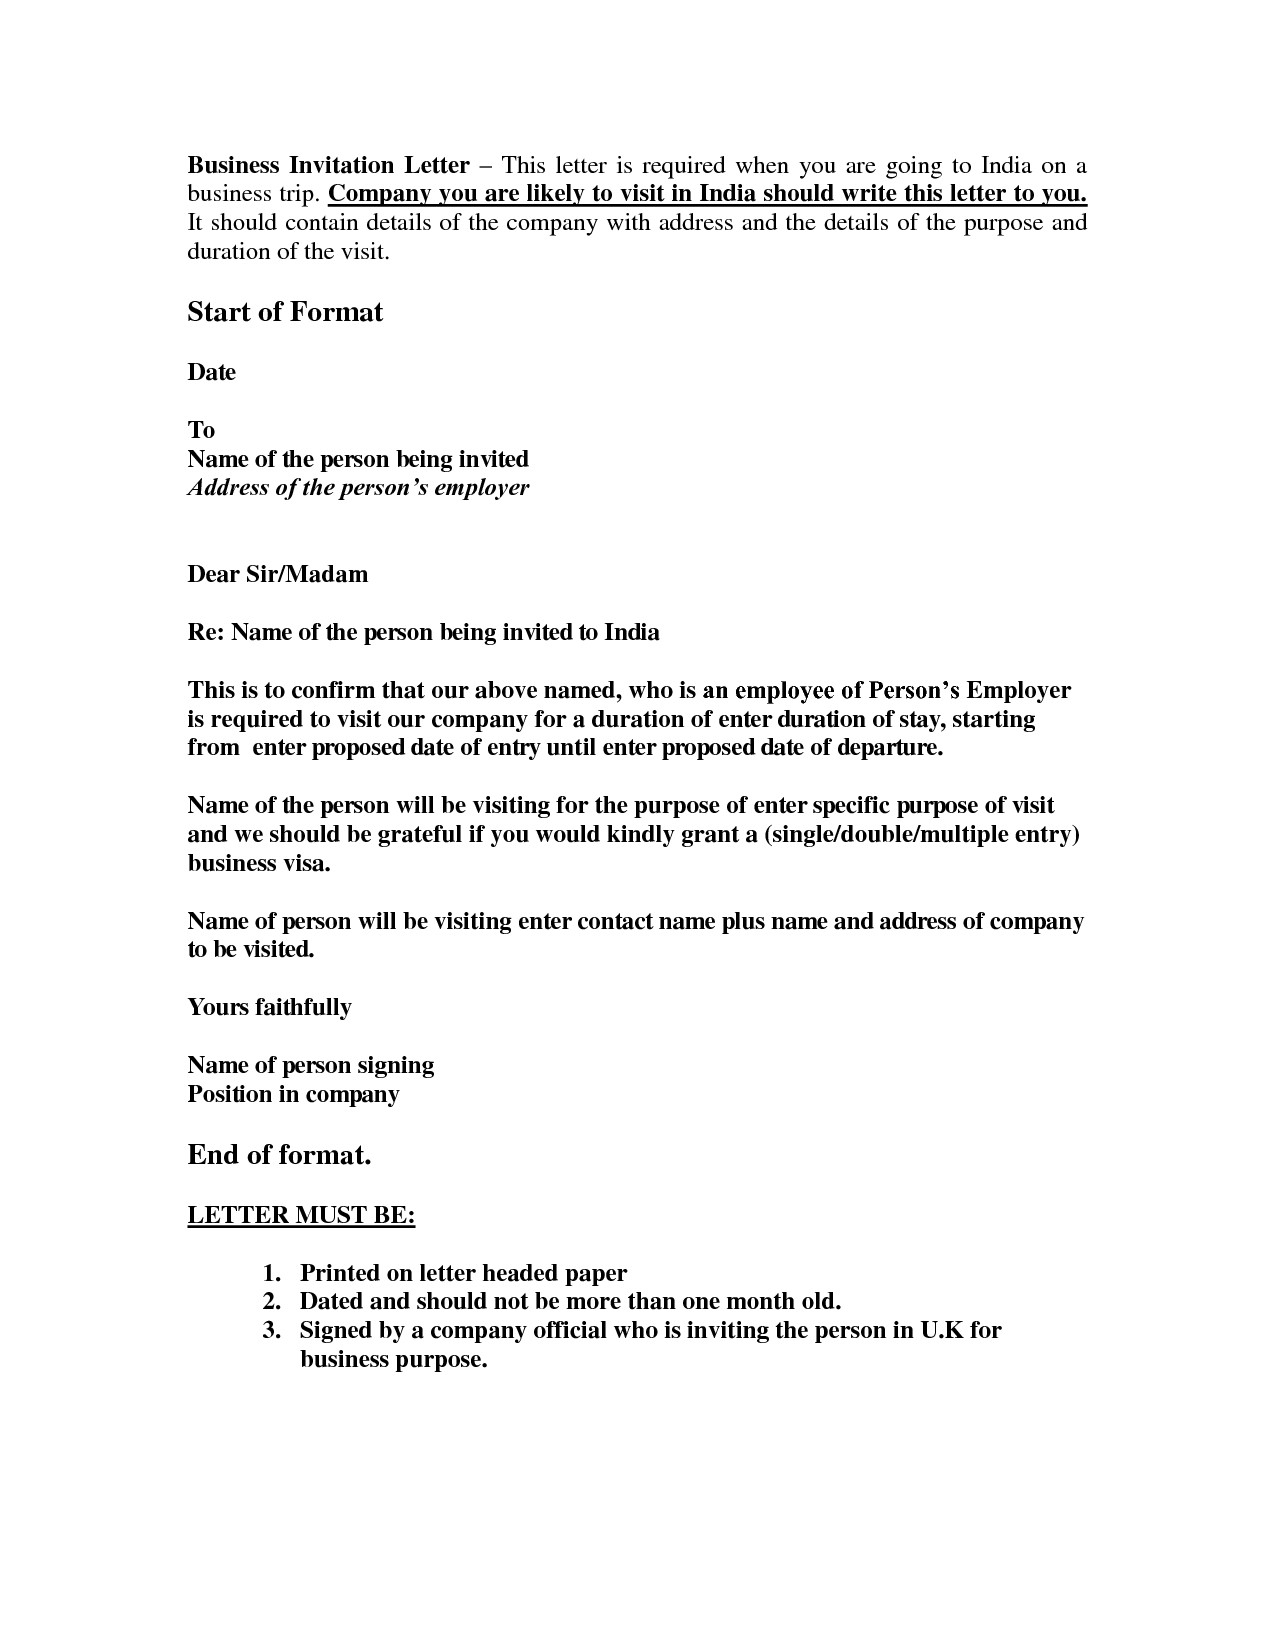 Grant Request Letter Template - Ac Modation Request Letter to Pany Sample